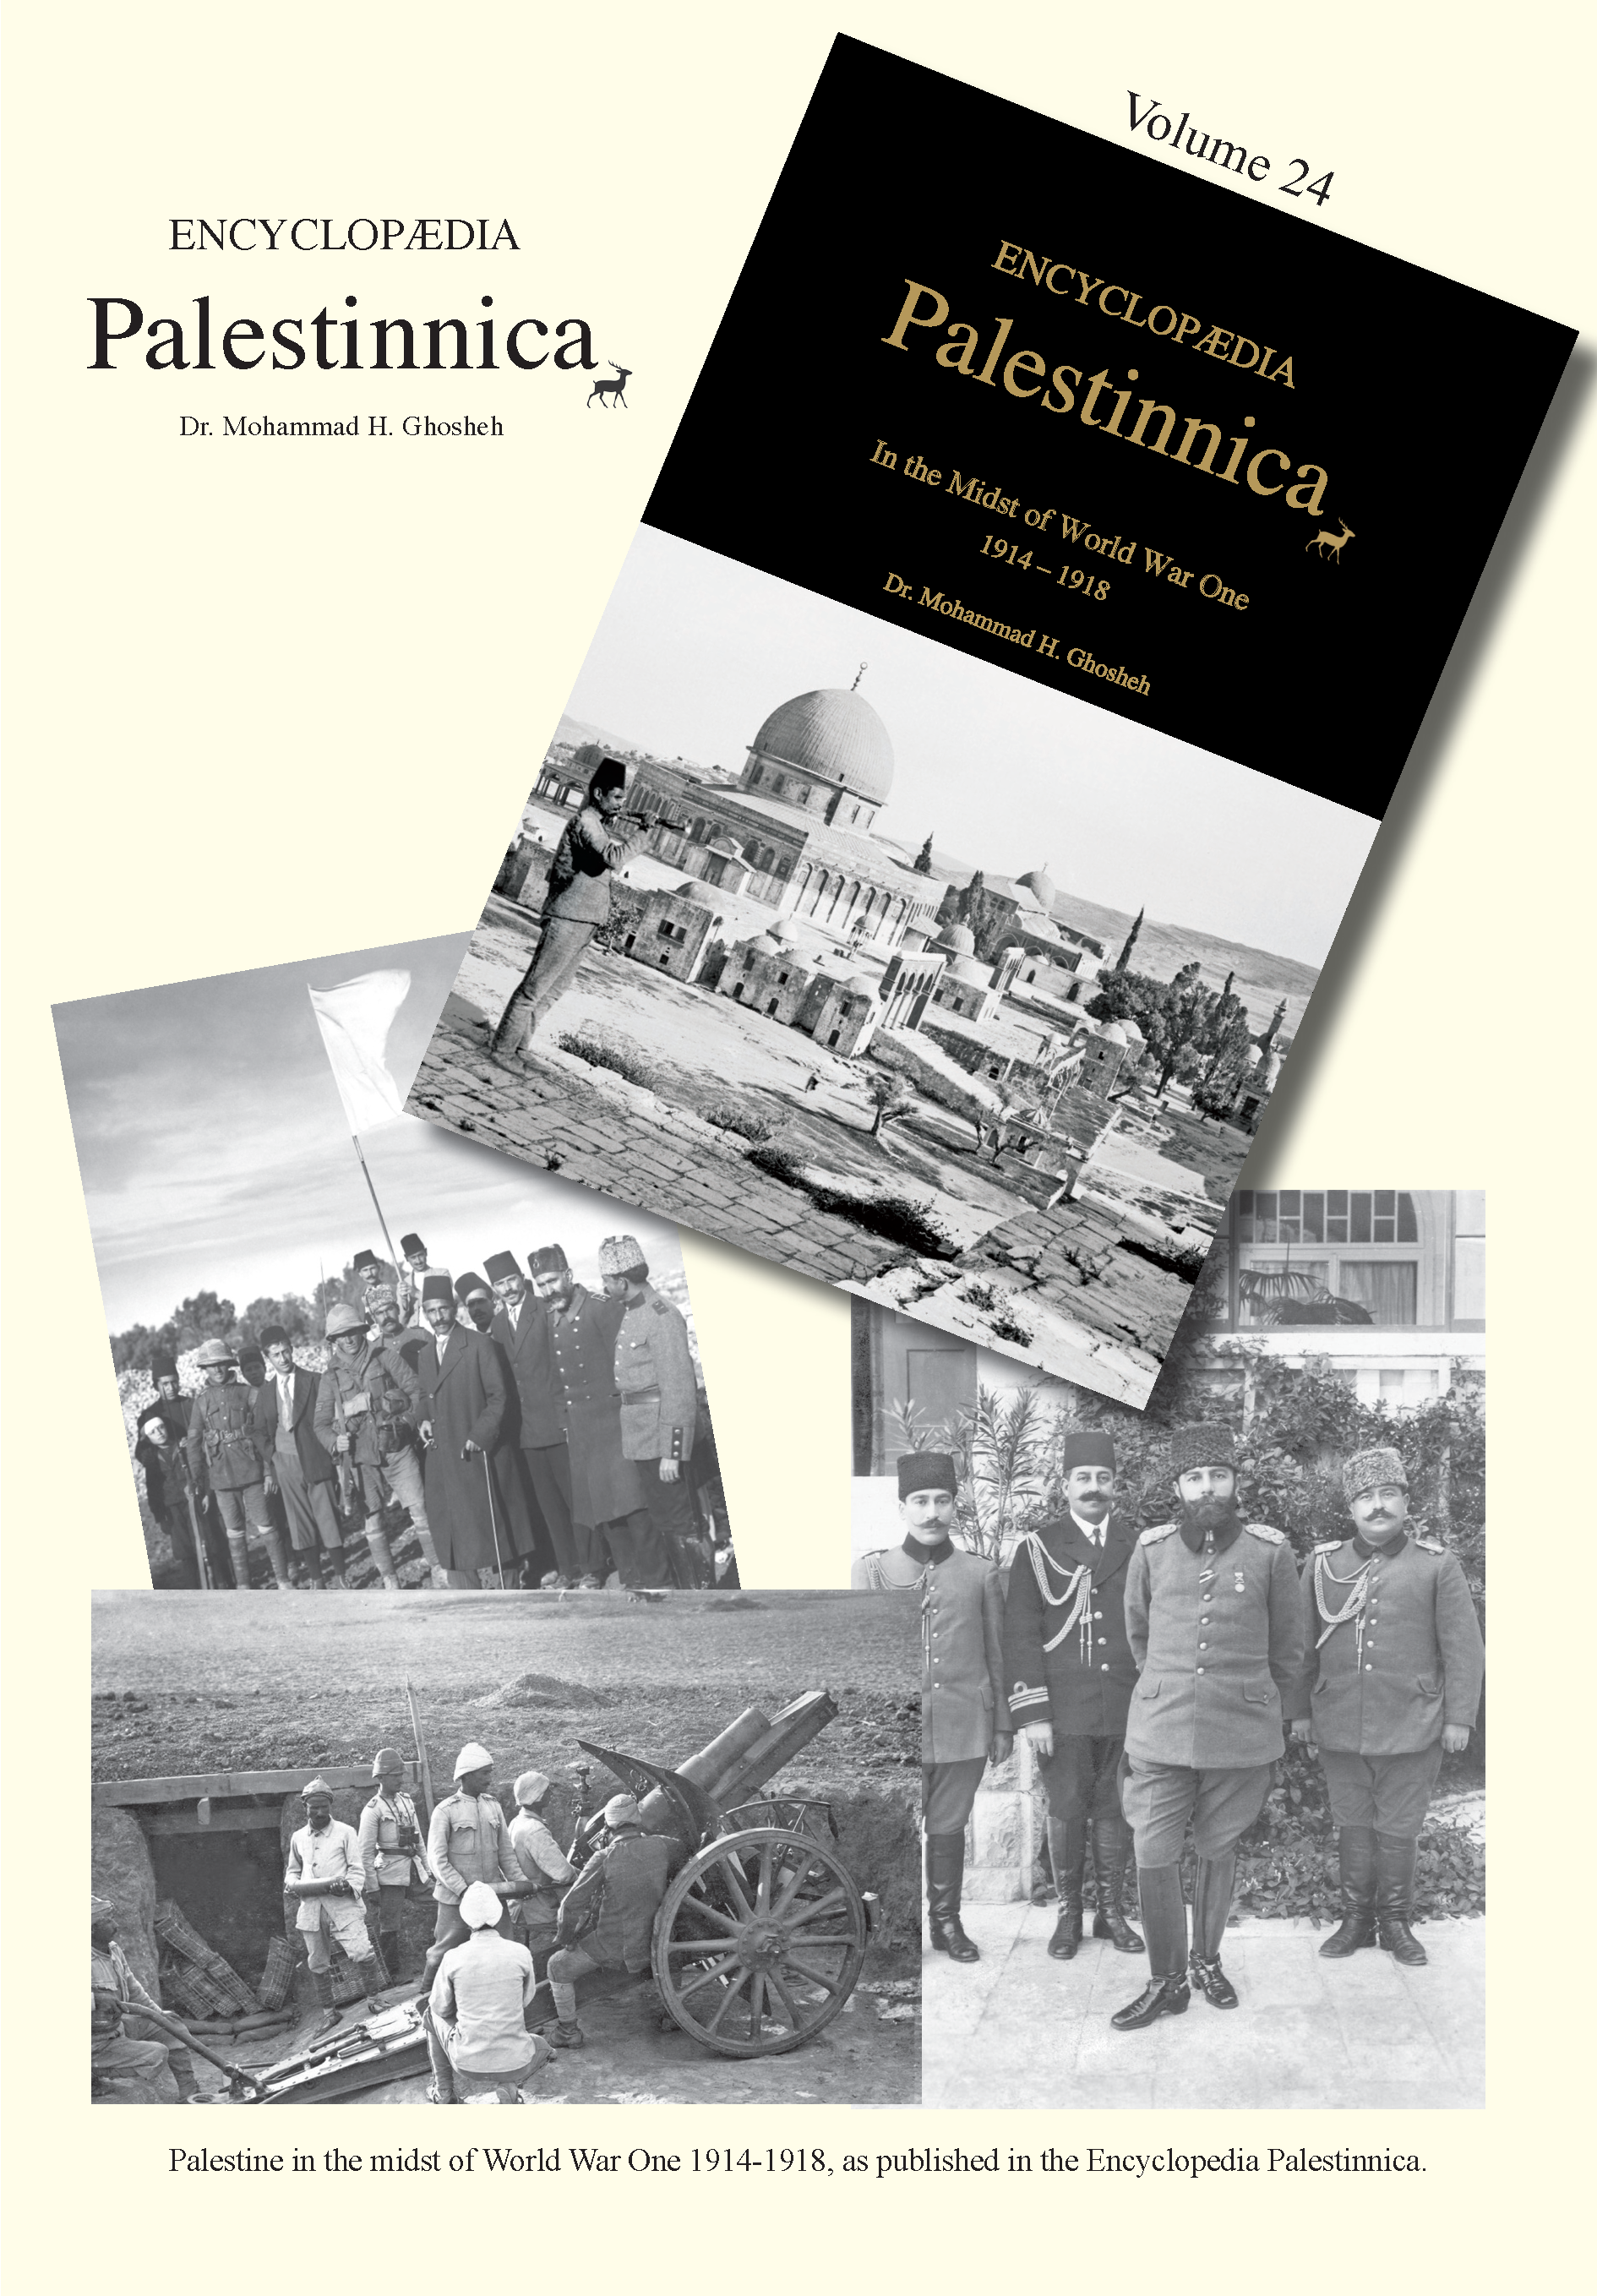 In the Midst of World War One in Palestine